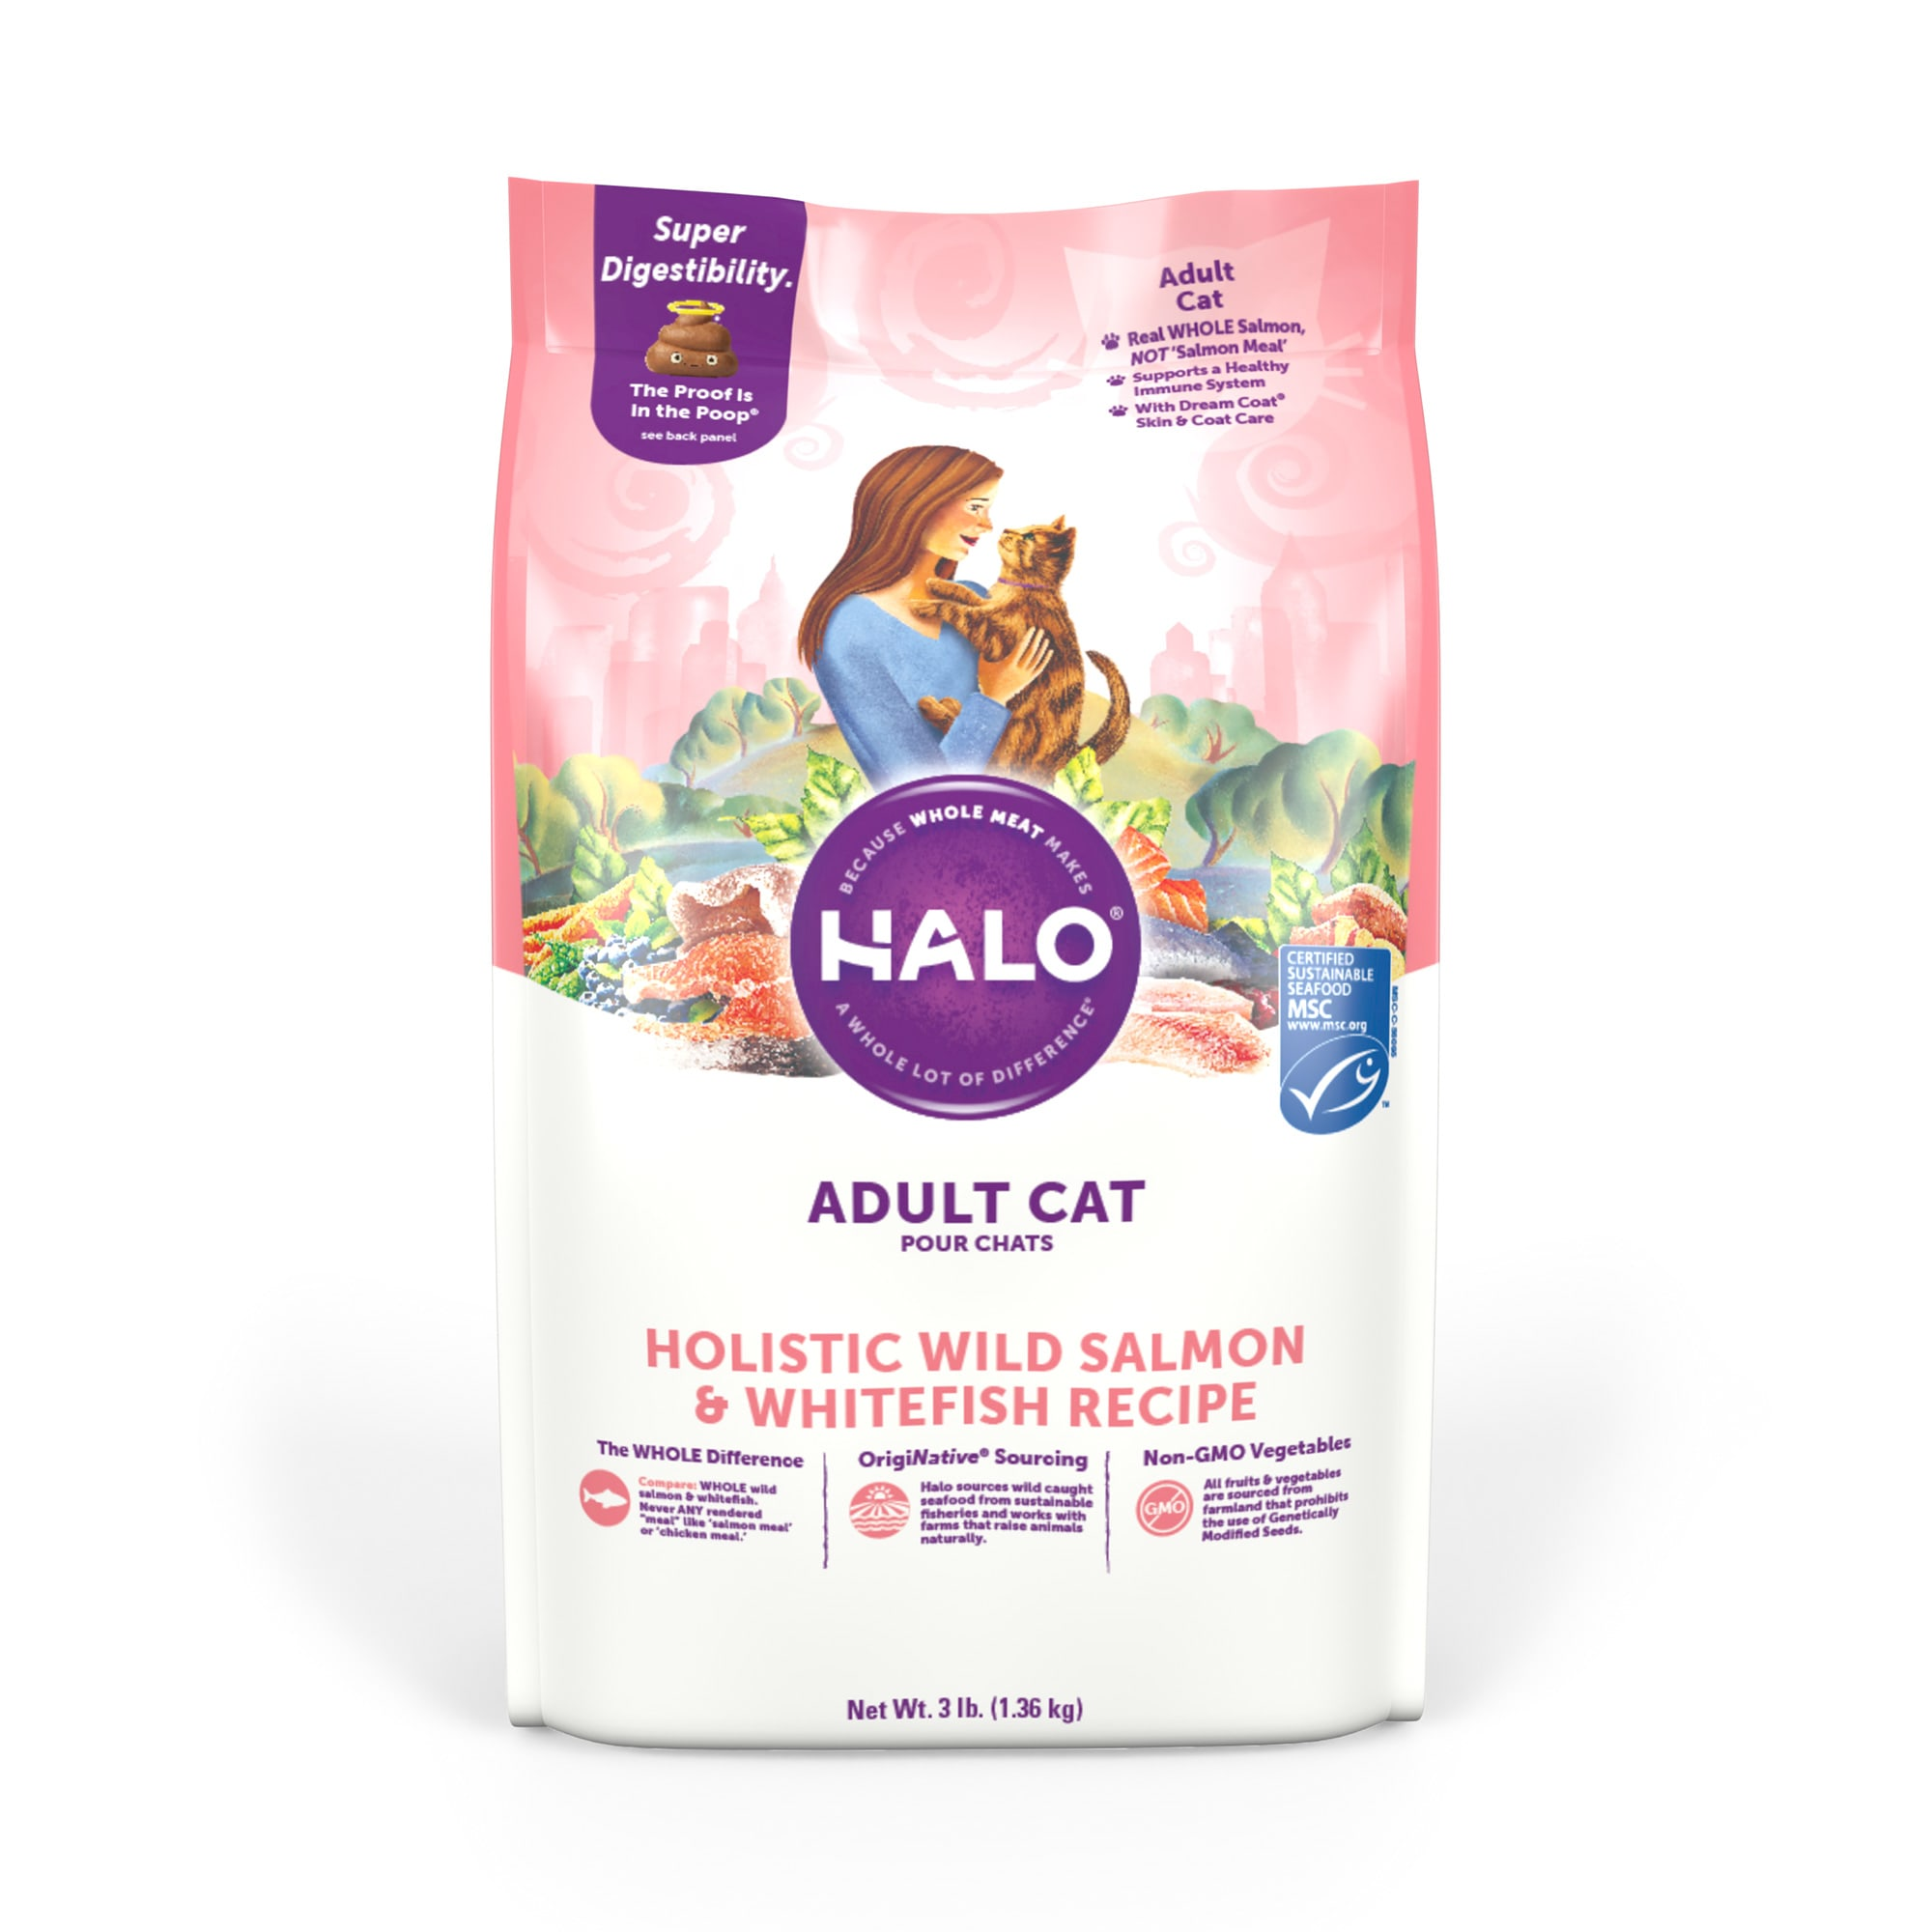 Halo Adult Holistic Wild Salmon & Whitefish Dry Cat Food